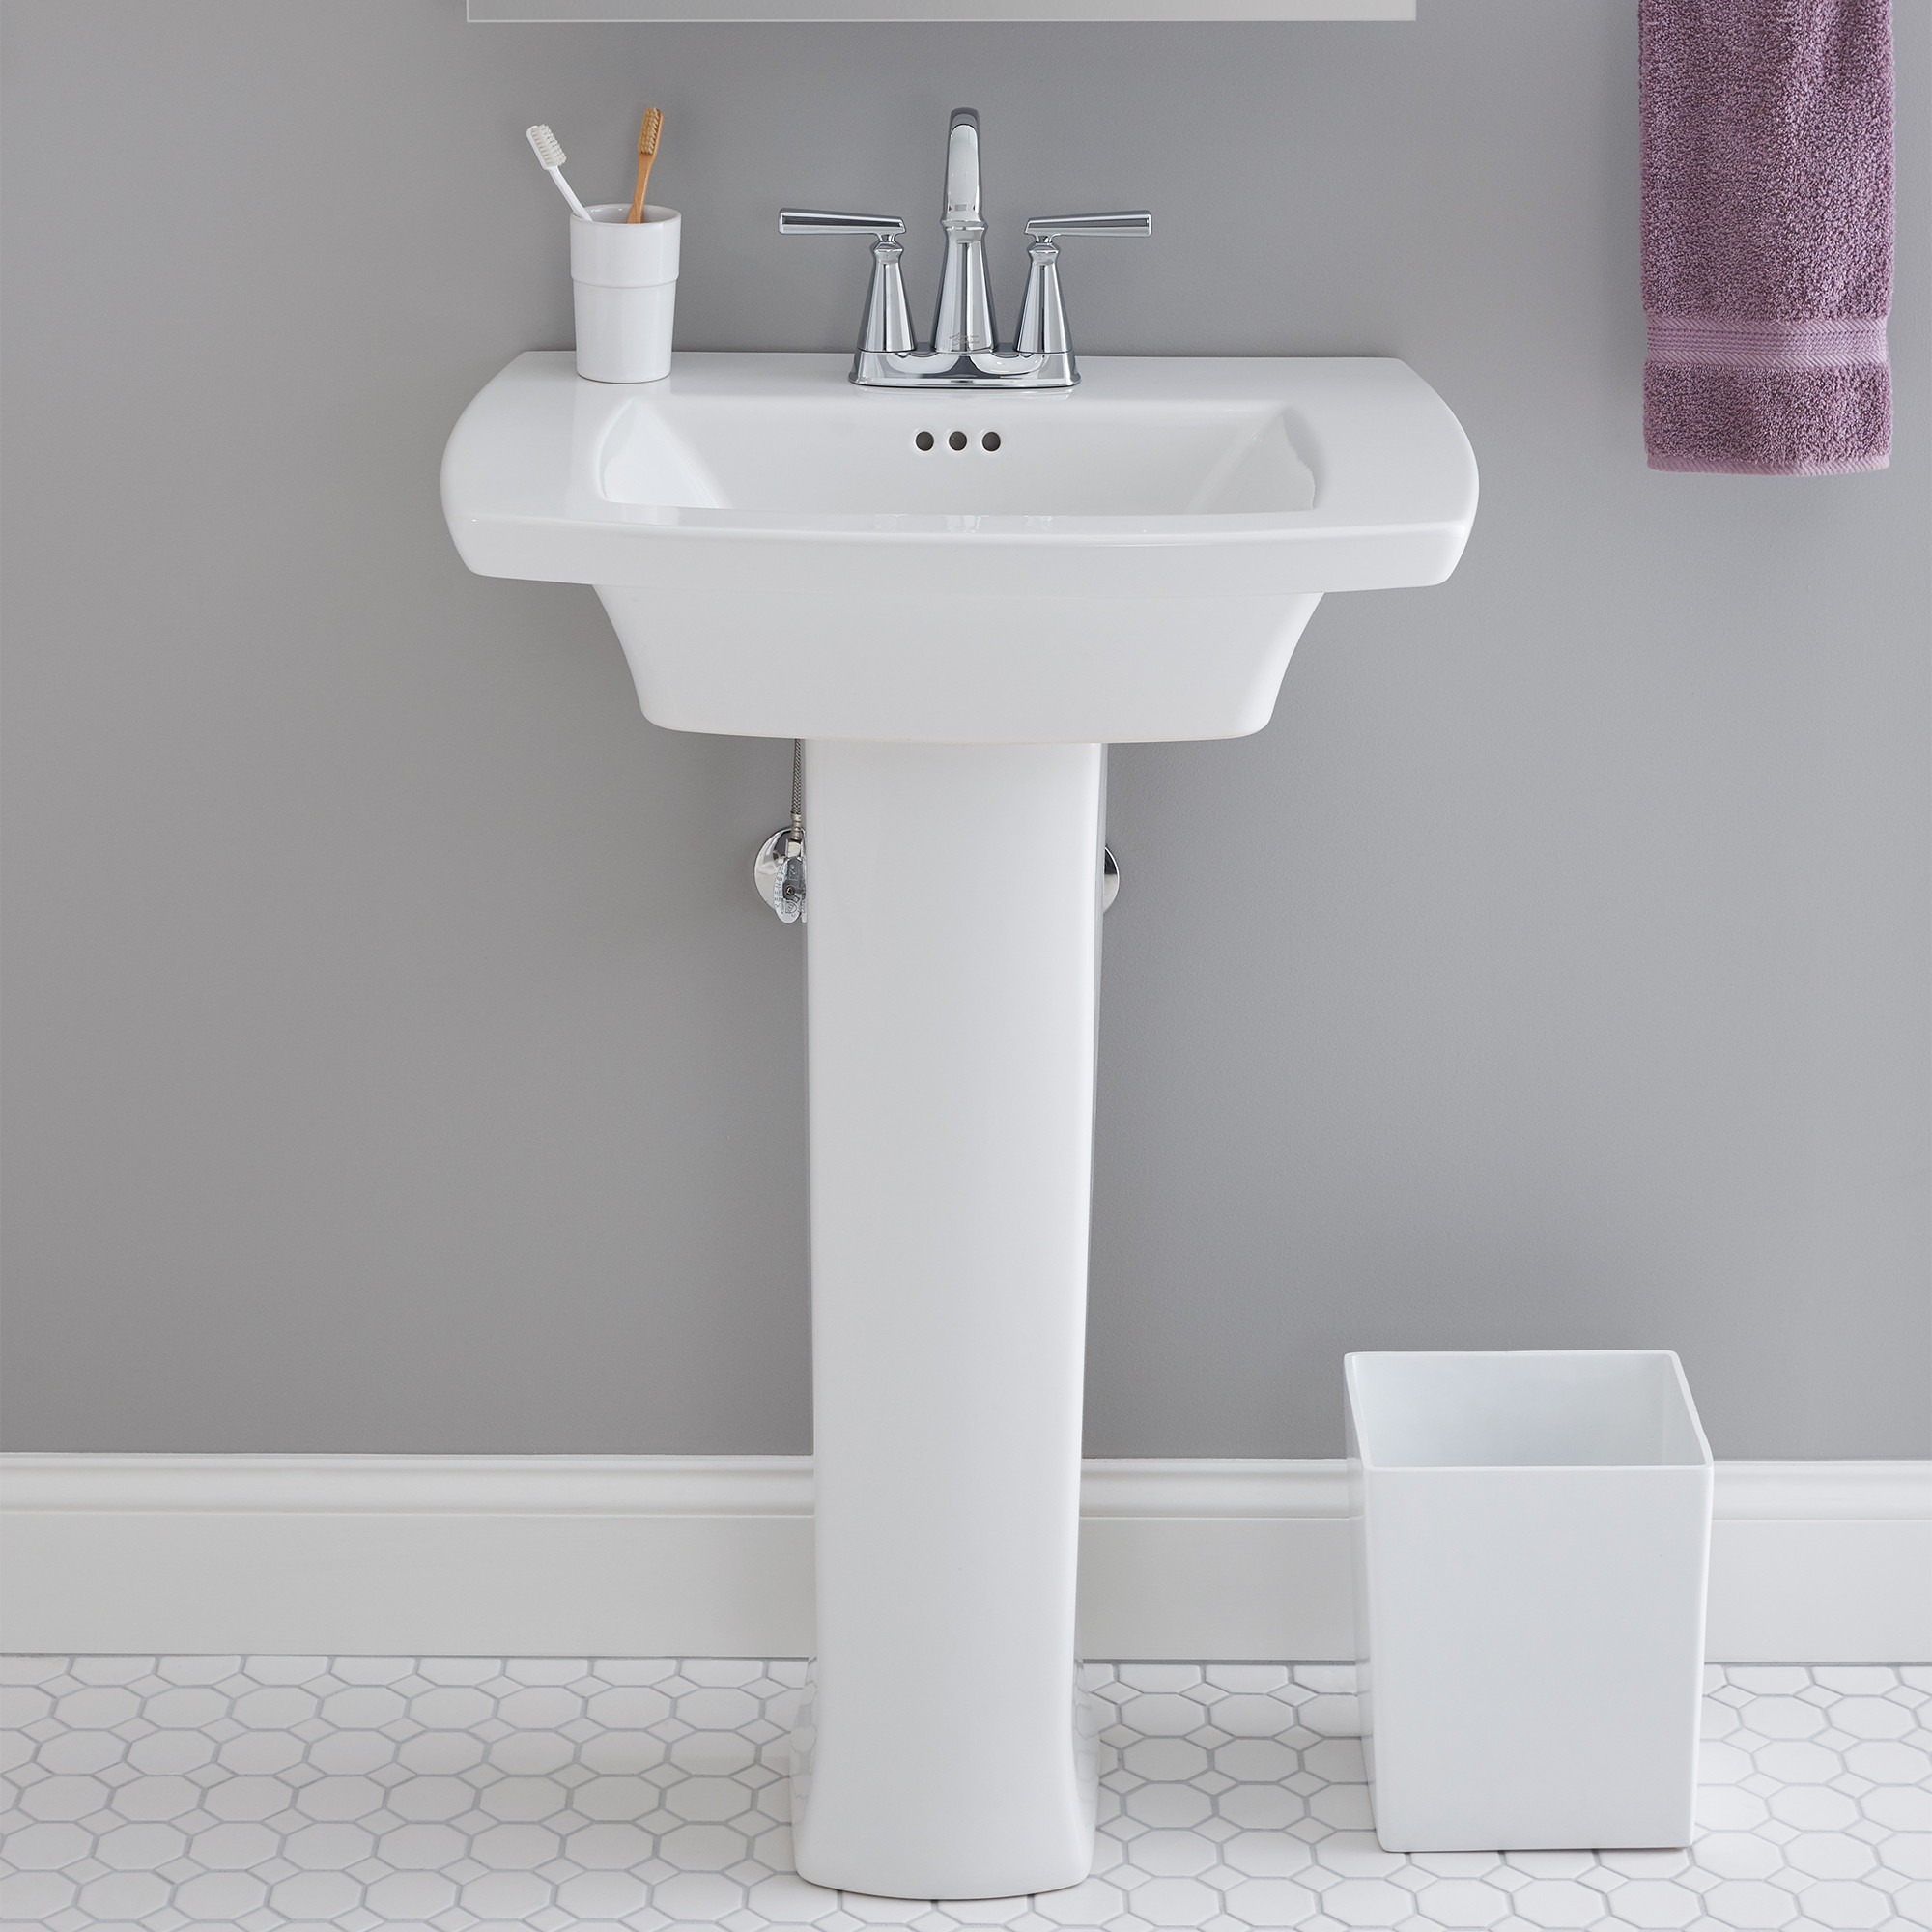 Best ideas about Bathroom Pedestal Sink . Save or Pin Edgemere Pedestal Sink Center Hole ly Now.